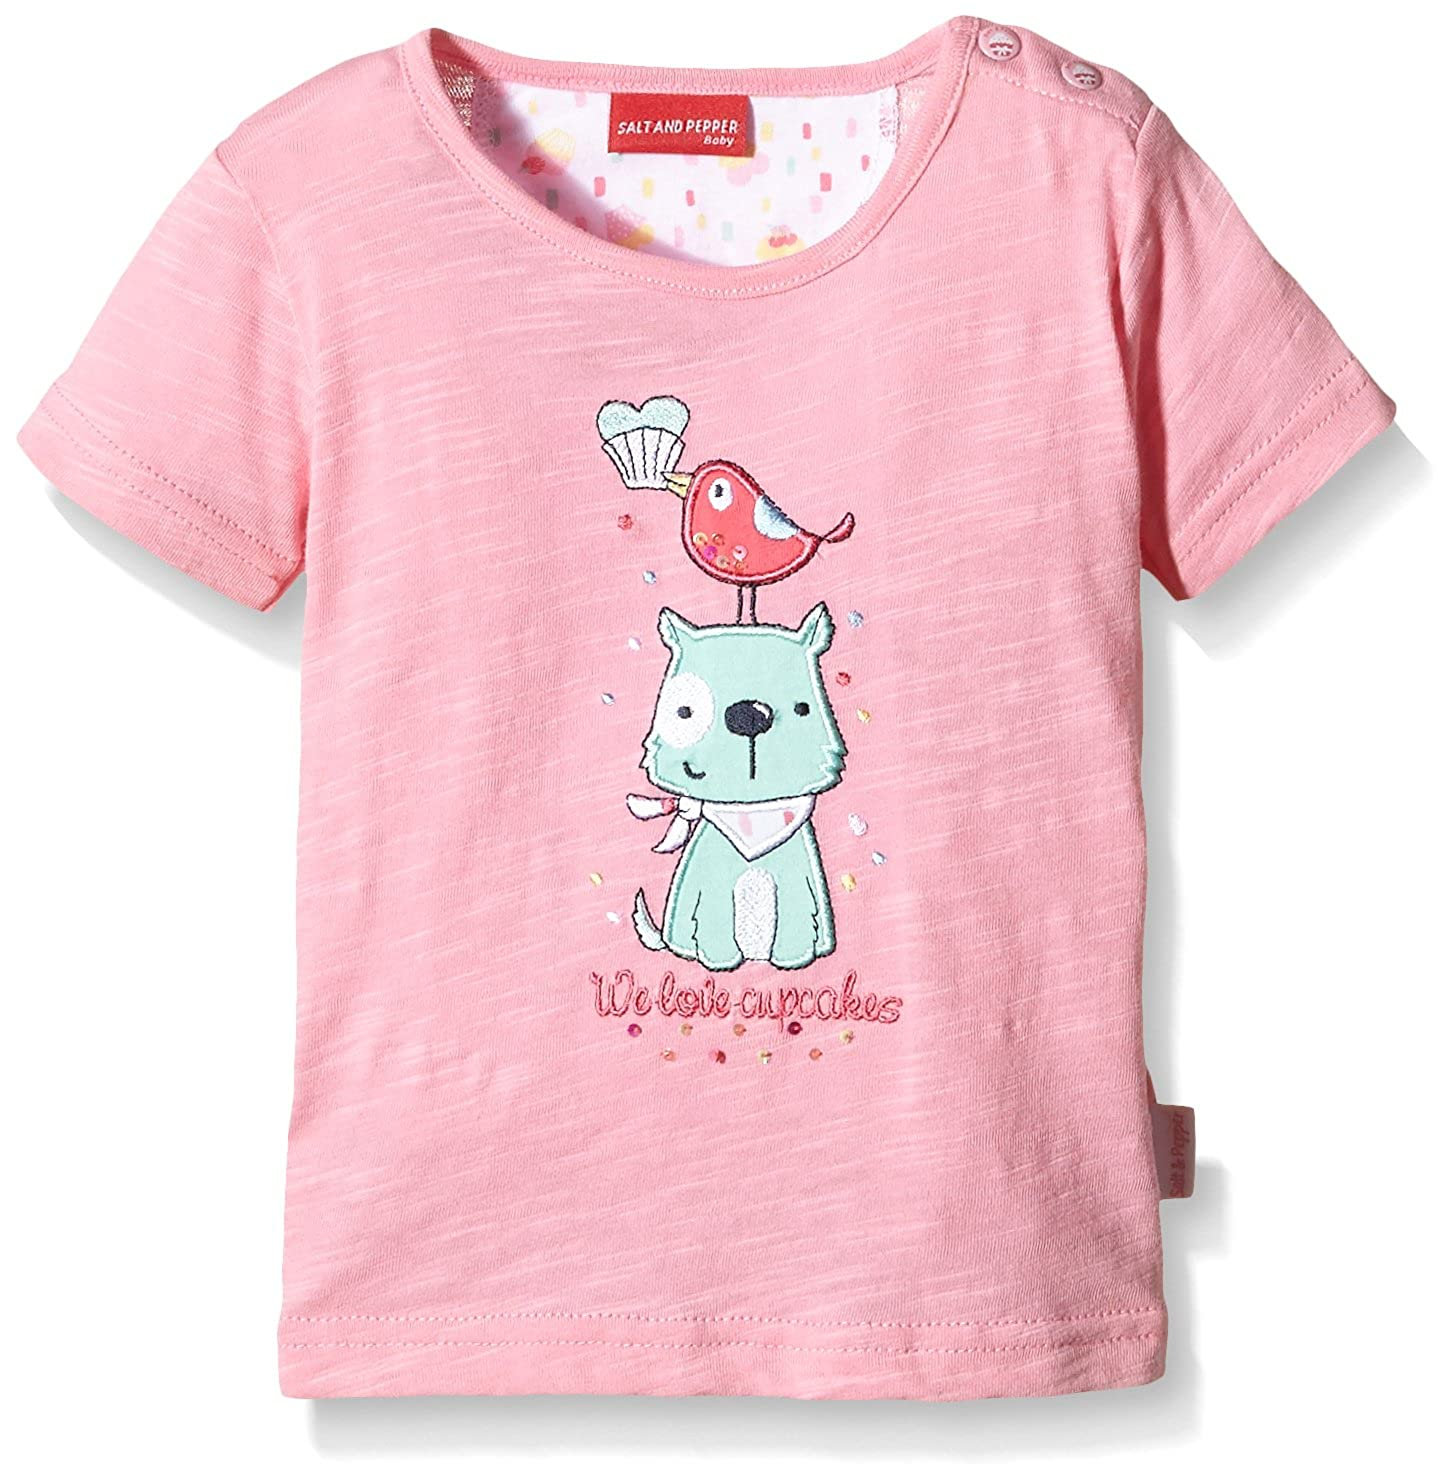 SALT AND PEPPER Baby - Mädchen T-Shirt B T-Shirt Sweetie Uni Stones Rosa (Sorbet Rose 853) 68 63212225